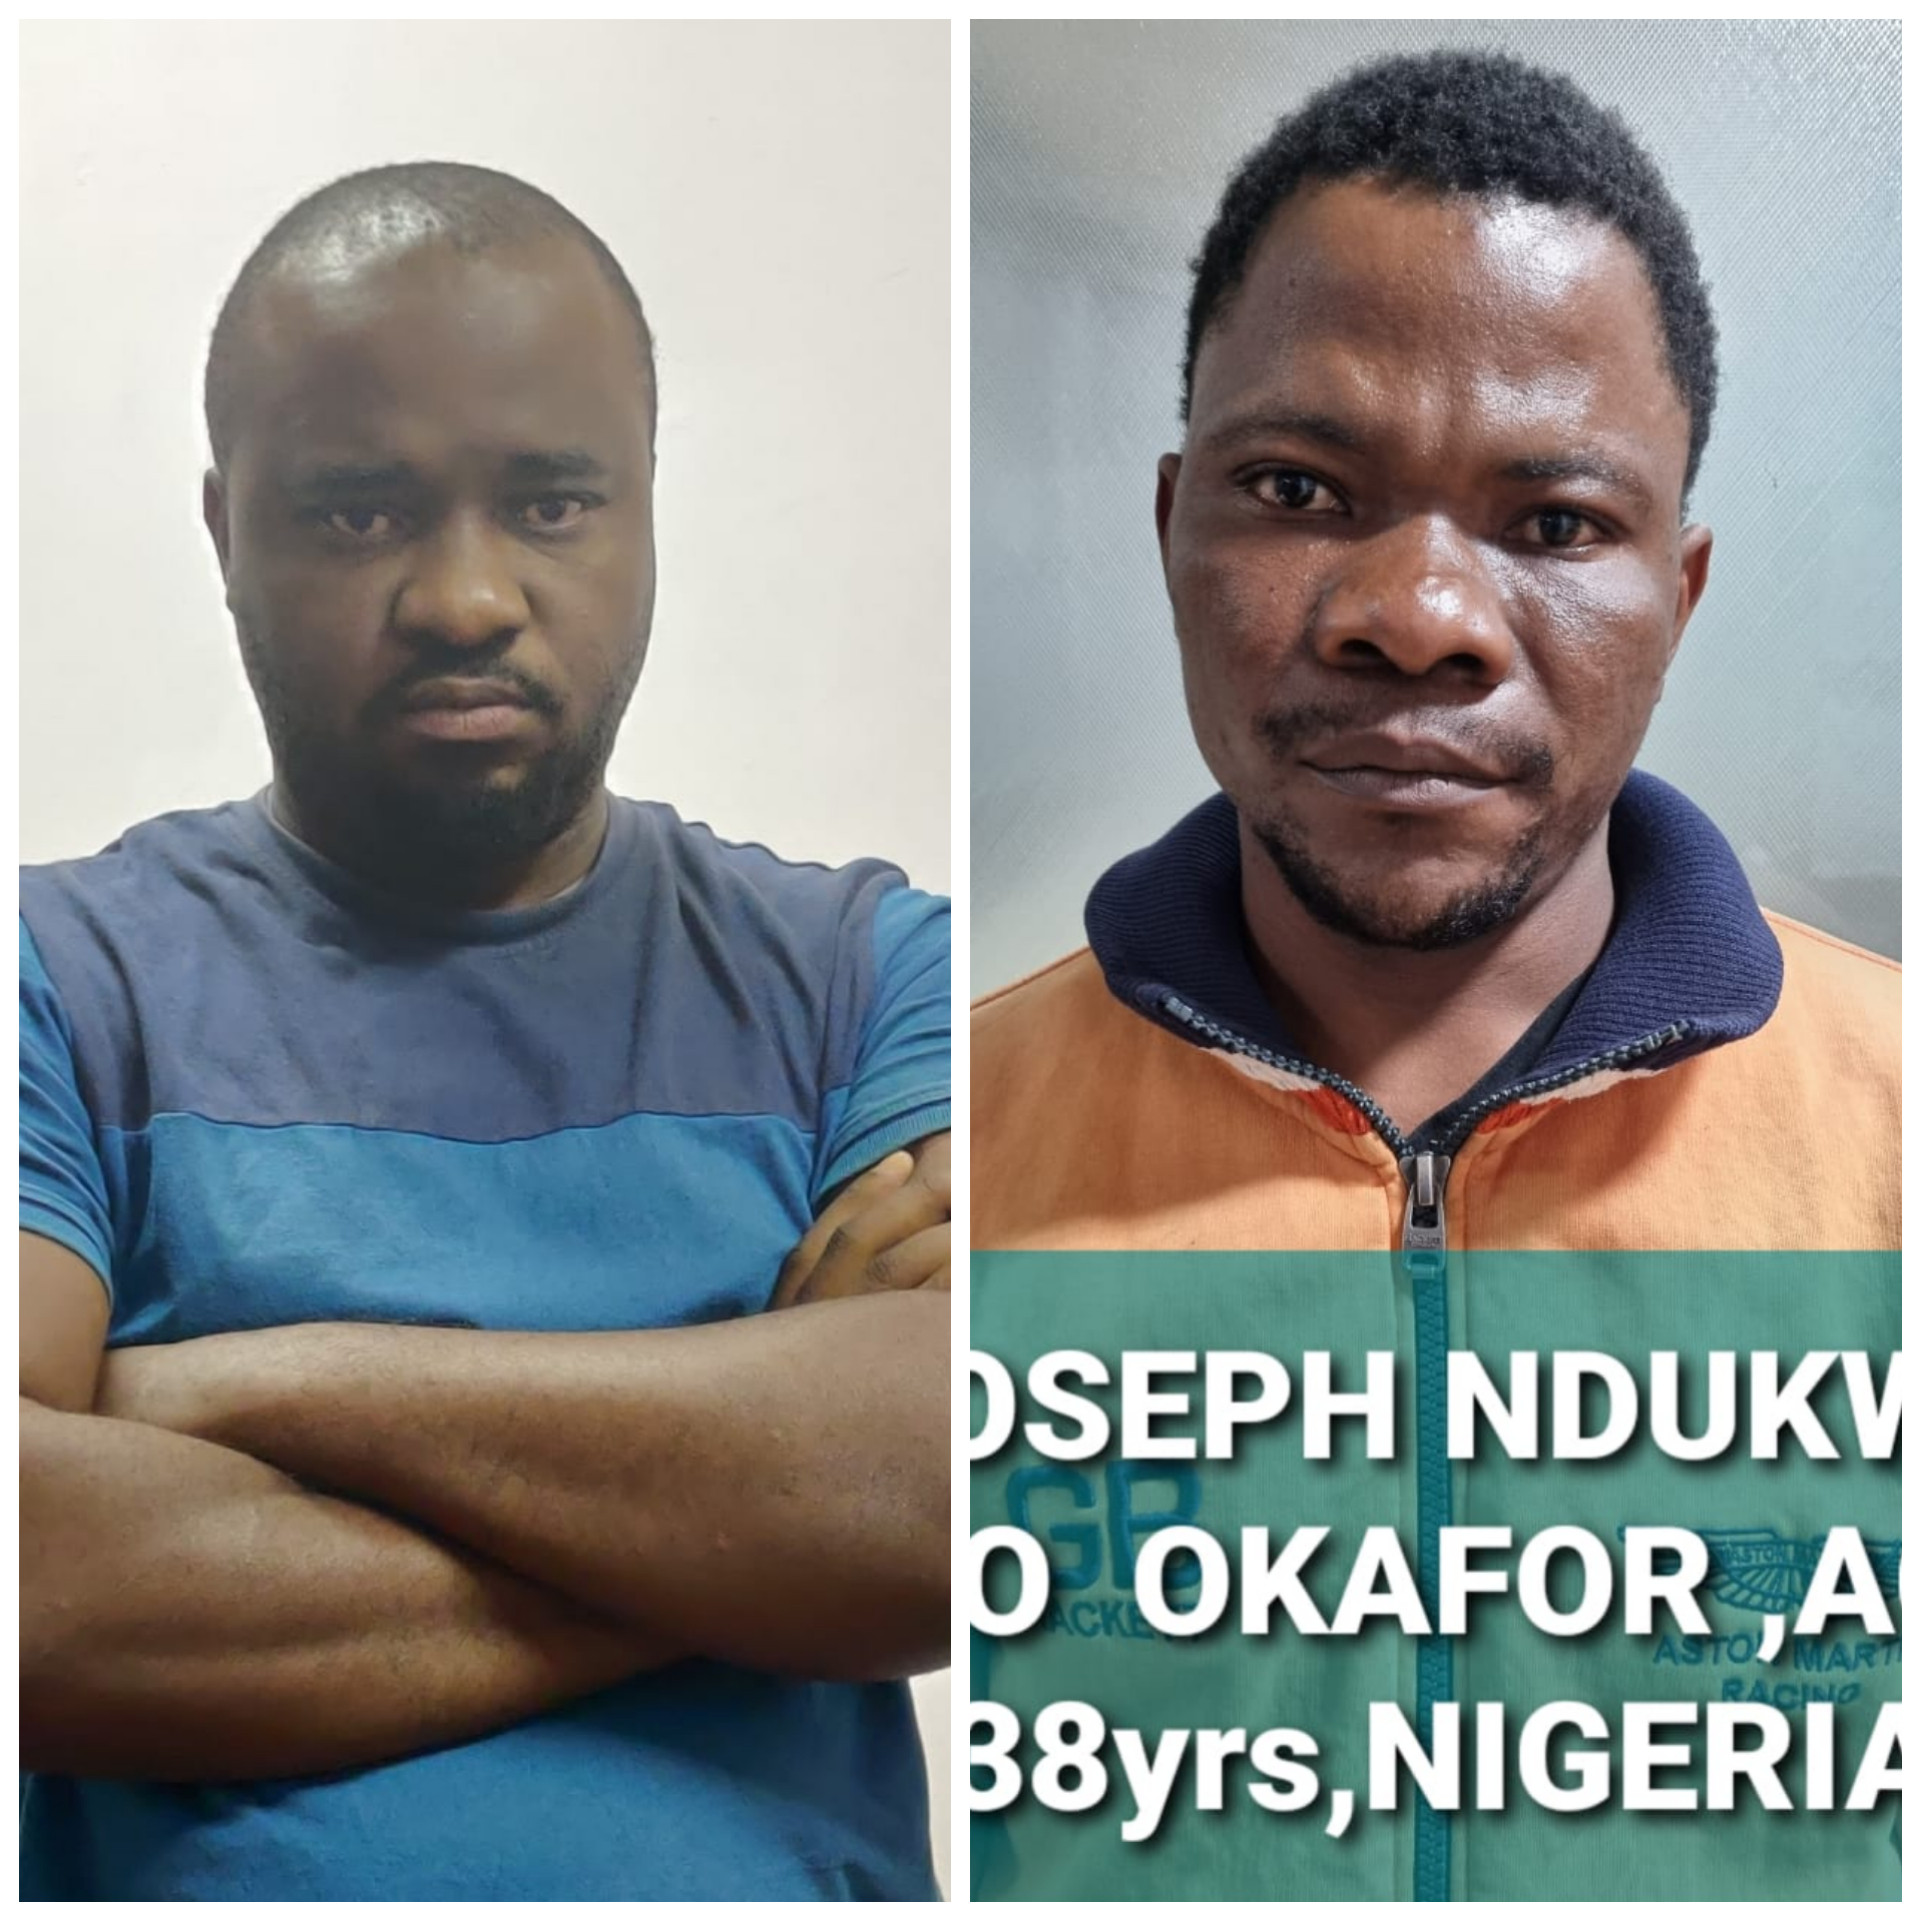 TWO NIGERIAN NATIONALS ARRESTED IN INDIA WITH DRUGS WORTH OVER N34M .PHOTOS